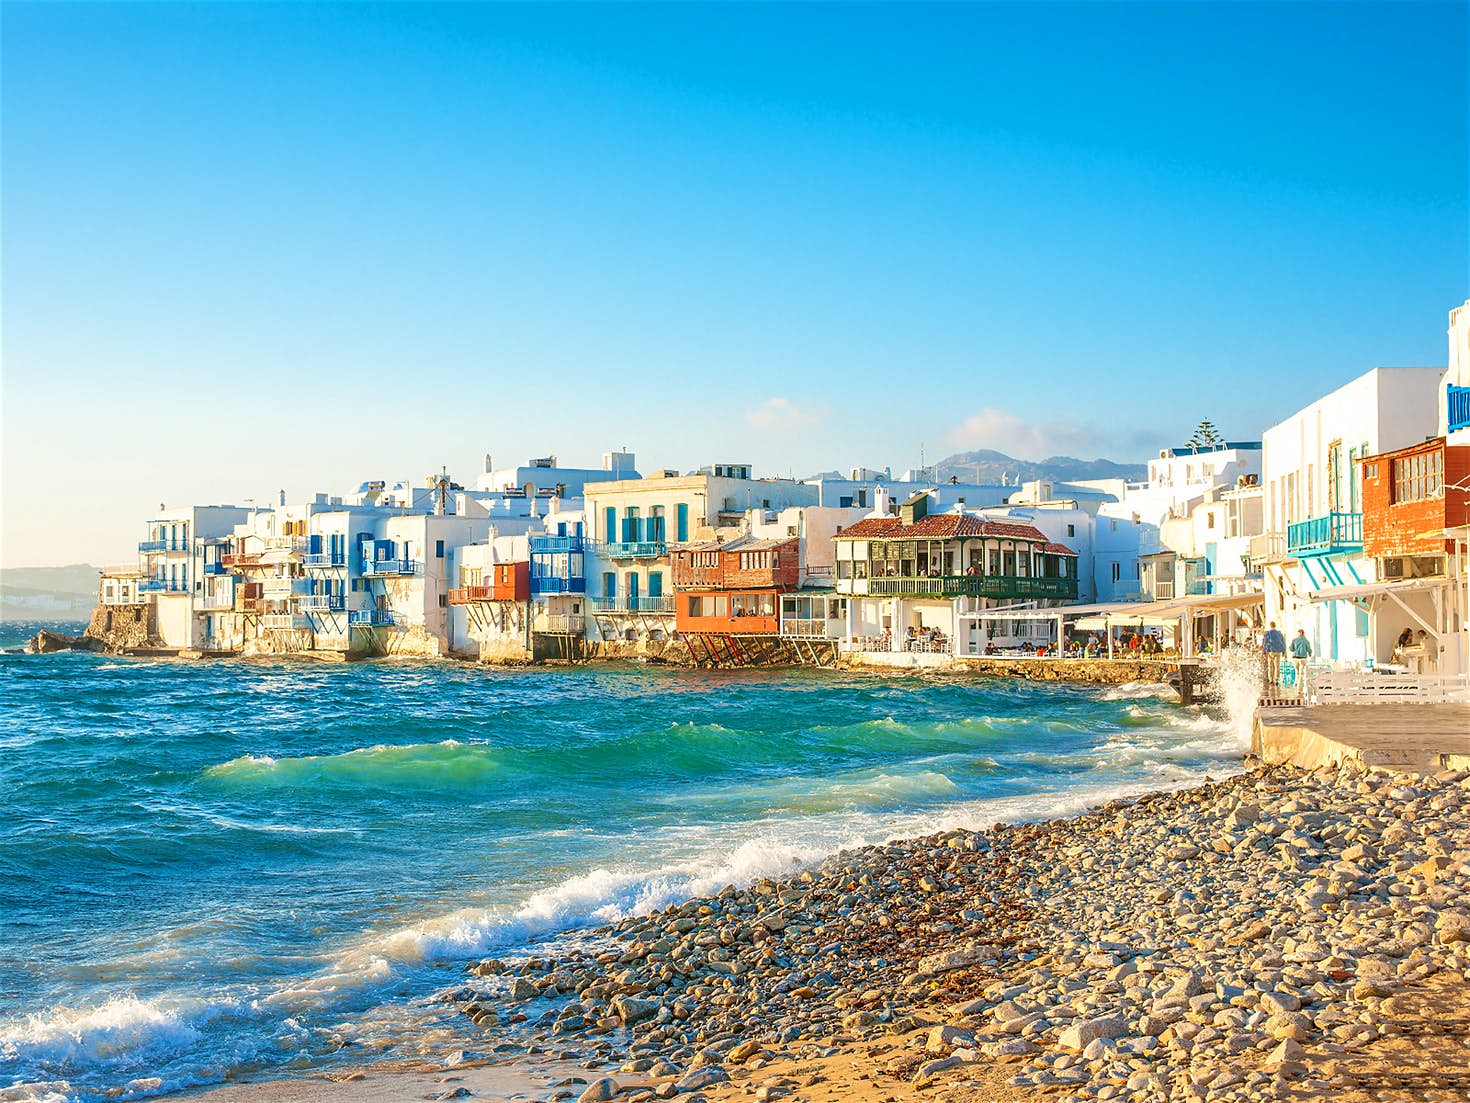 Mykonos Mini Cabin Tour - Blue Cruise,Light Tours Blue Cruise, Blue Cruise, Discount Tours,Bodrum Private Yacht Charter 313